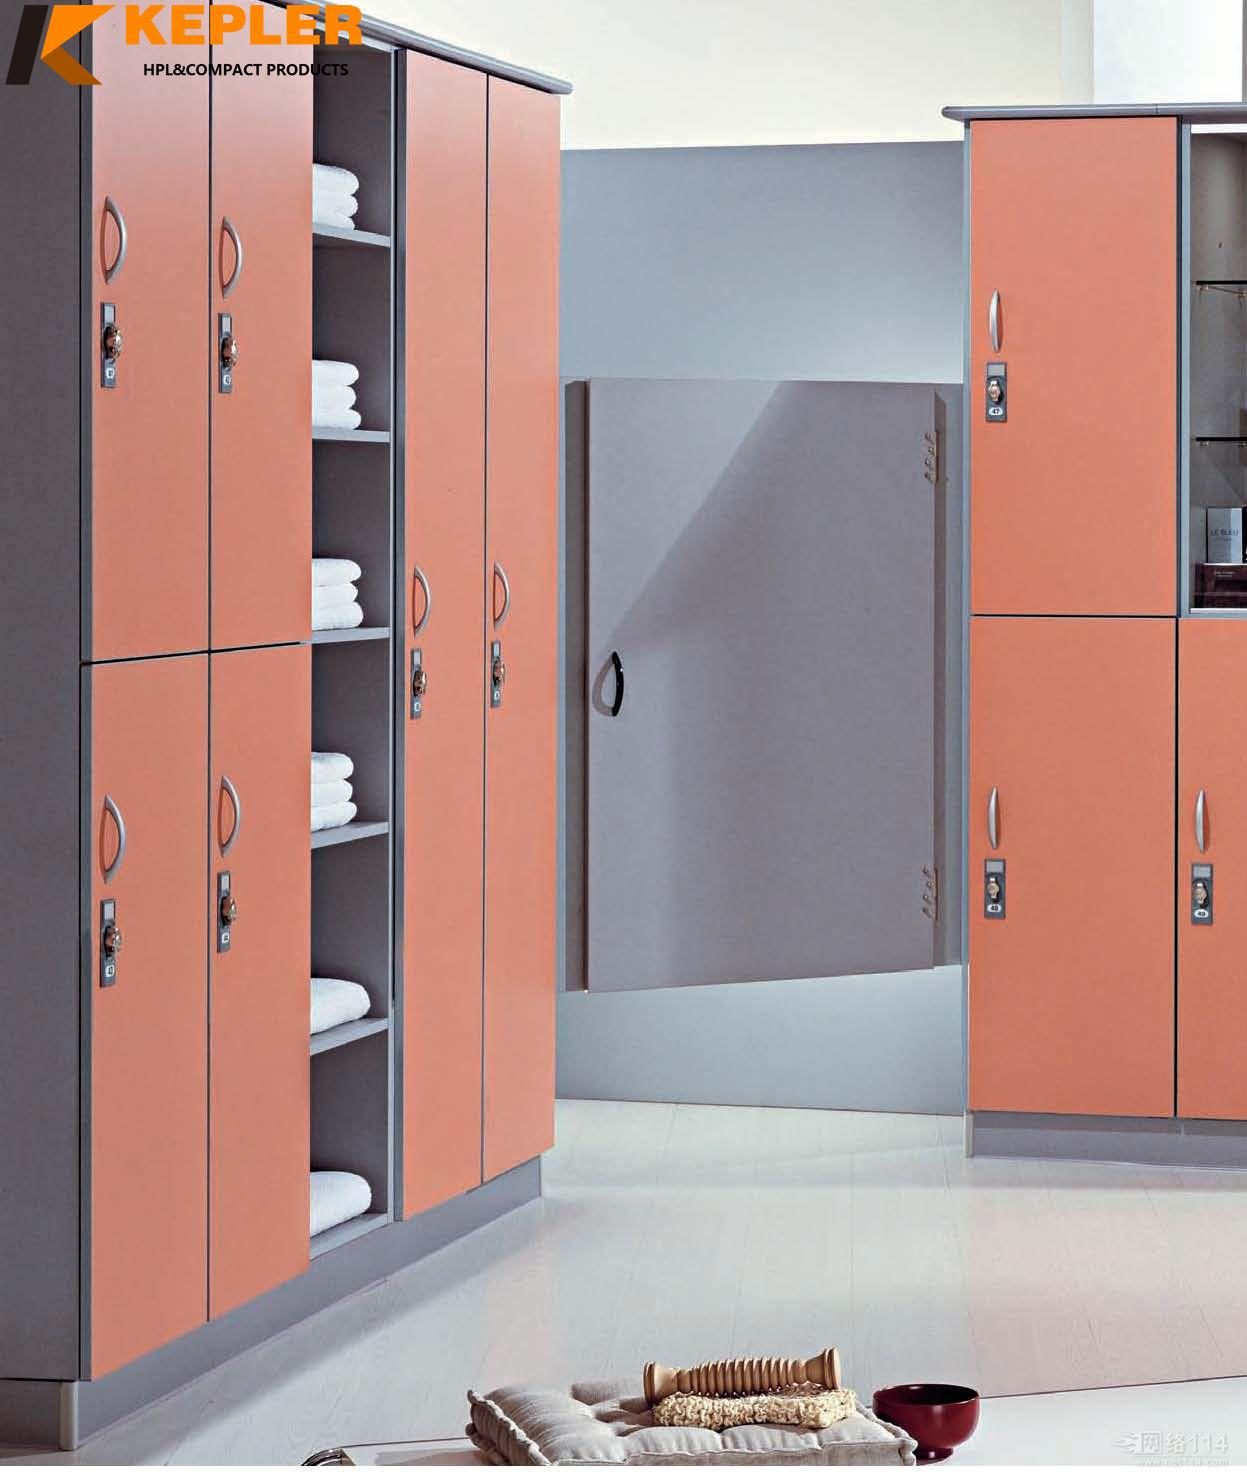 Kepler Waterproof Phenolic Compact Laminate Locker Cabinet For Dressing Room